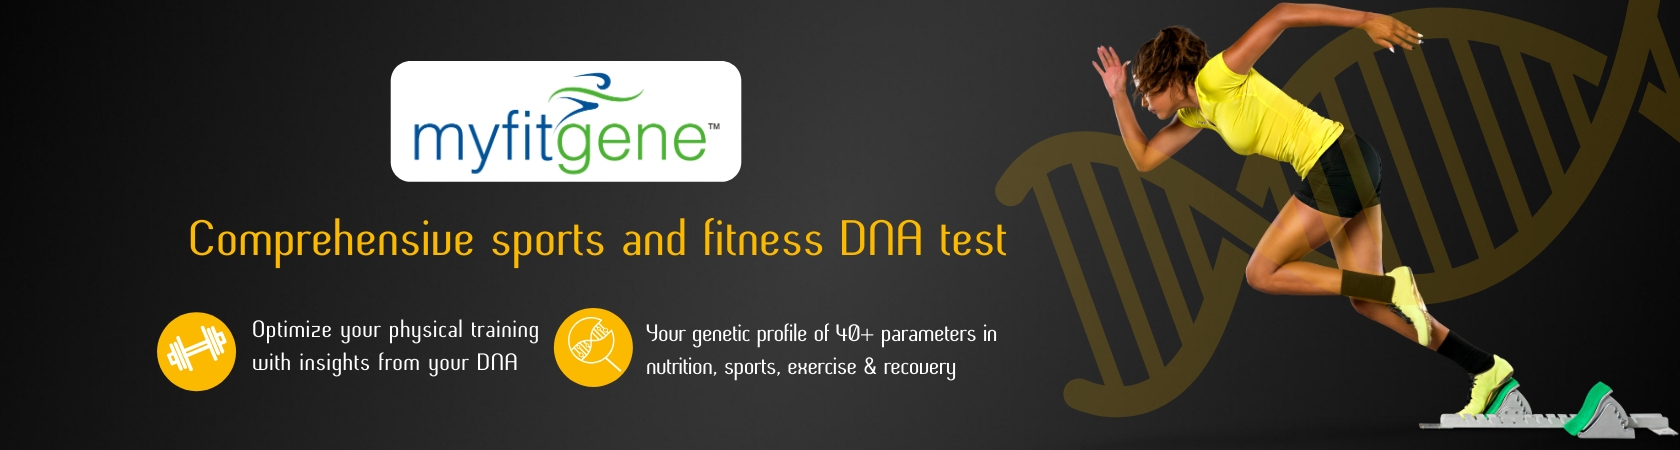 MyFitgene - Genetic Testing For Fitness & Weight Loss